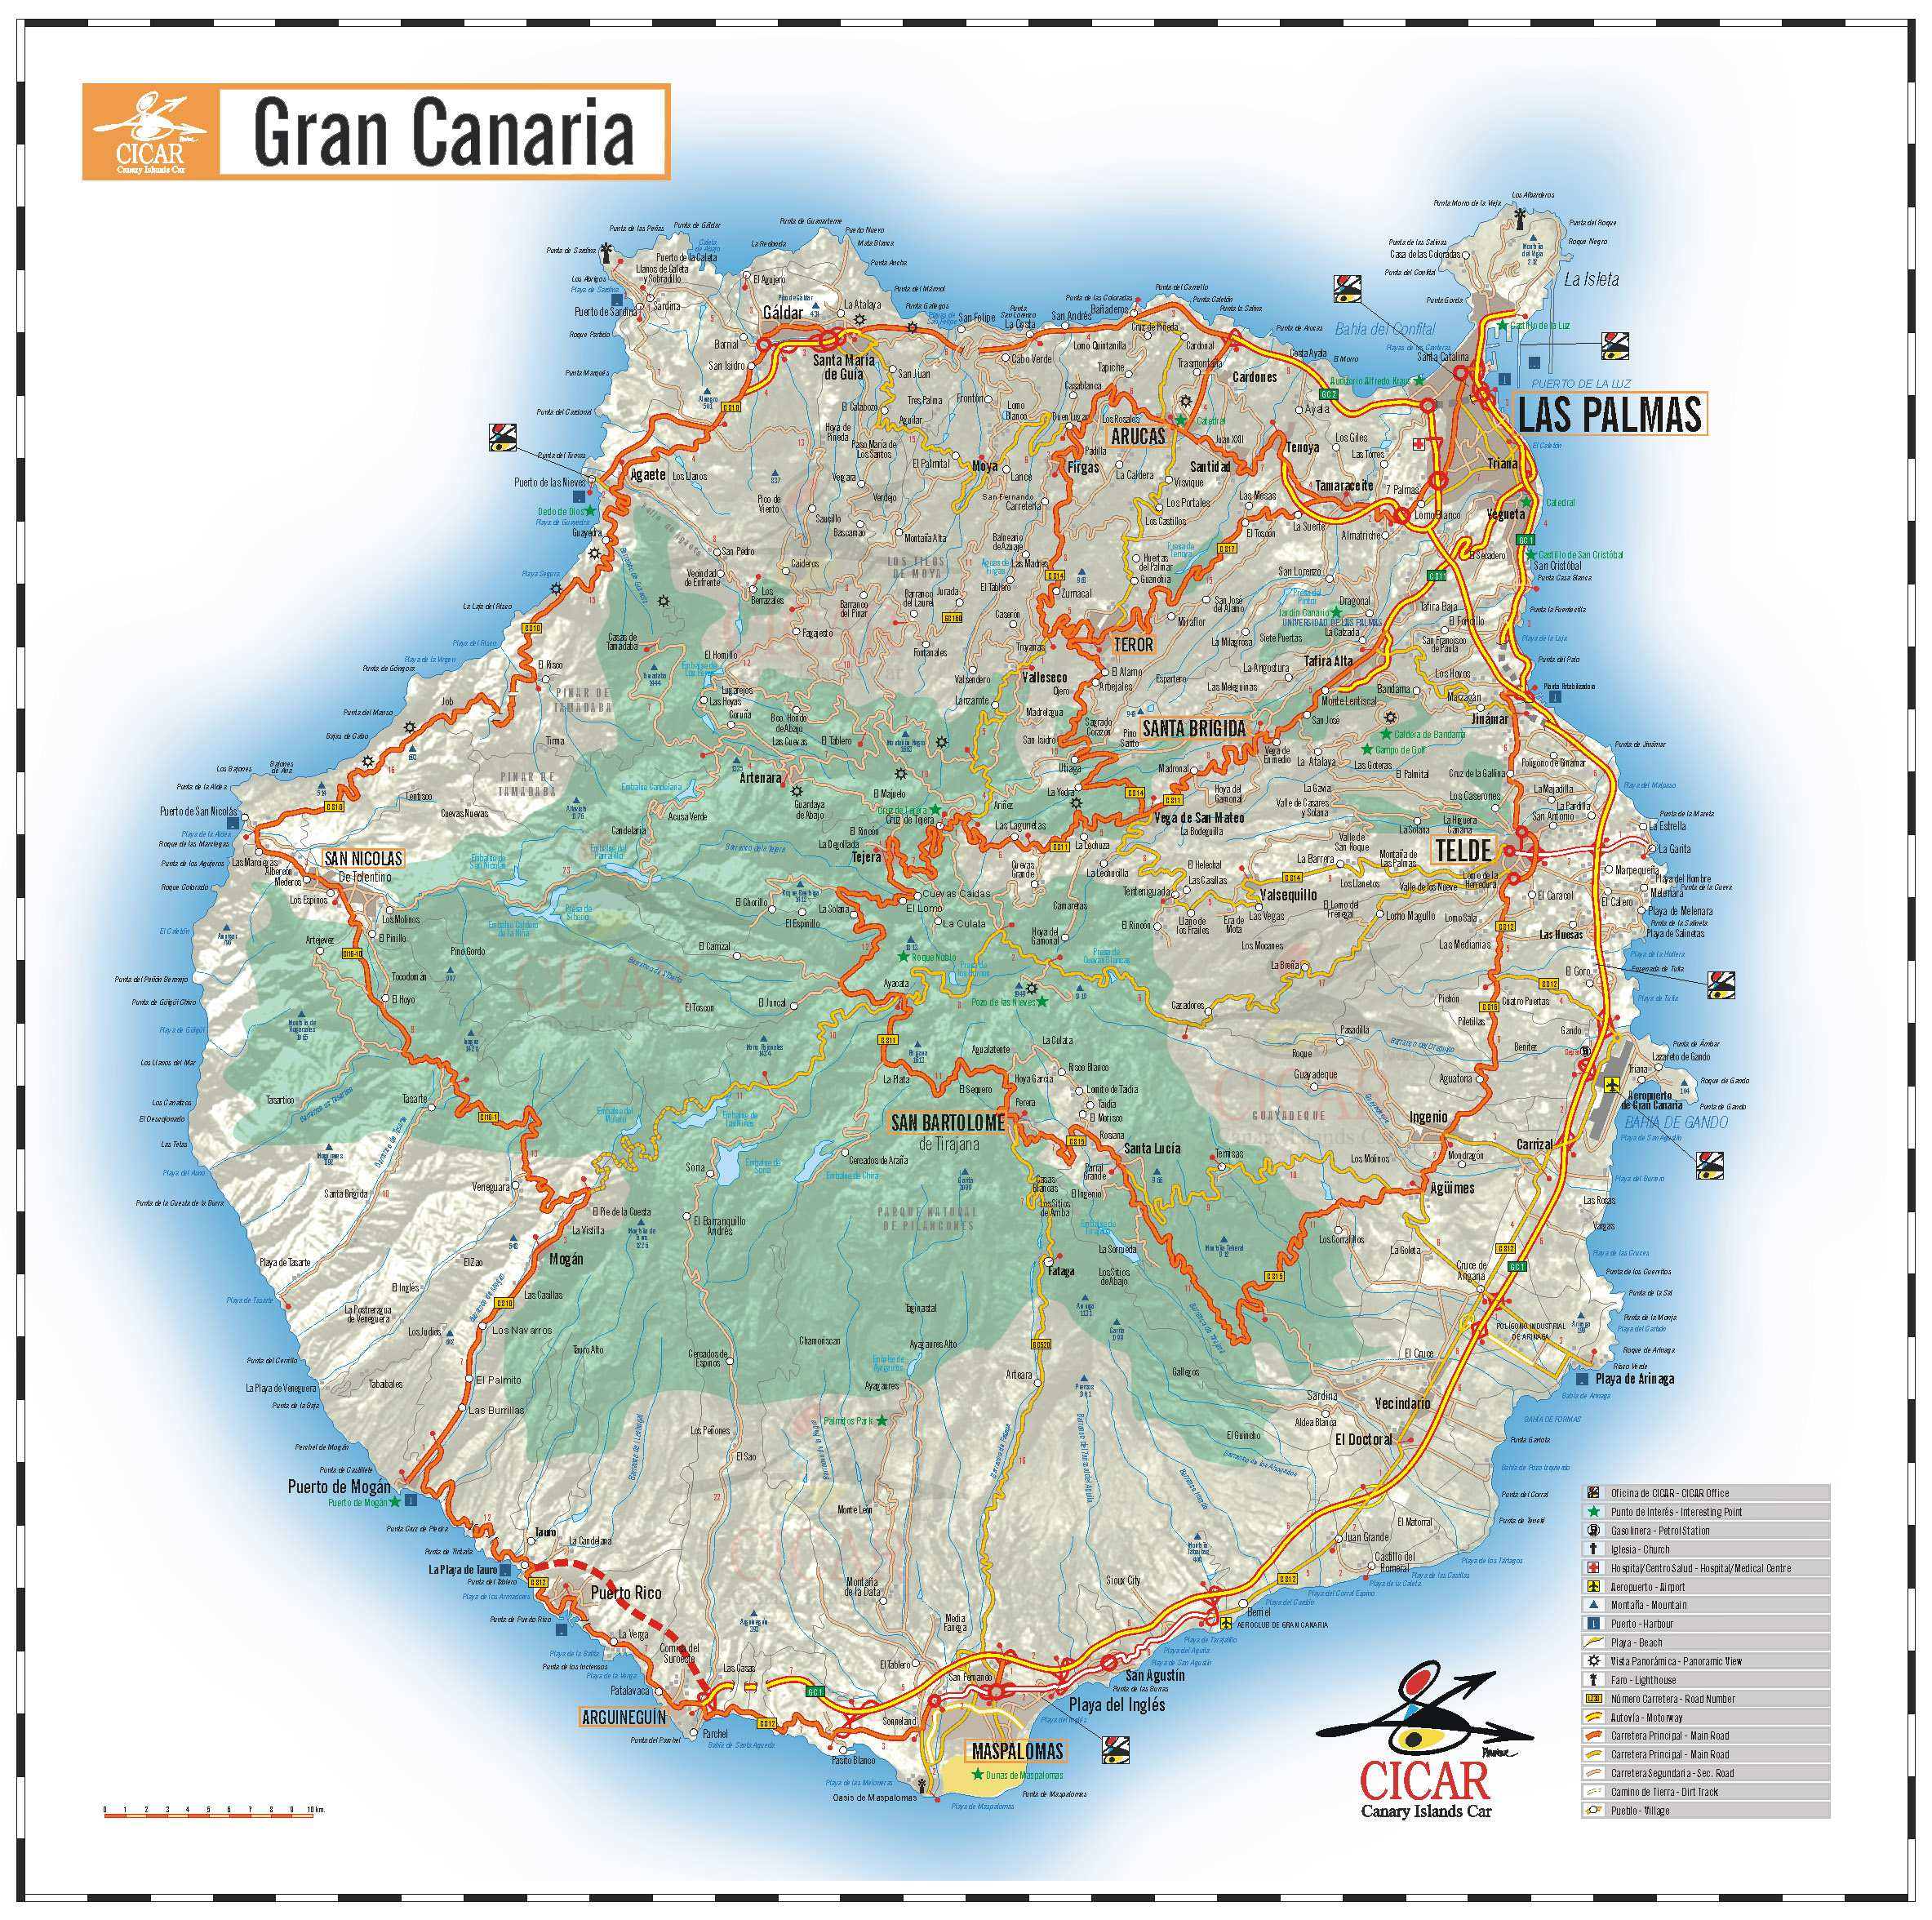 Large Gran Canaria Maps for Free Download and Print High